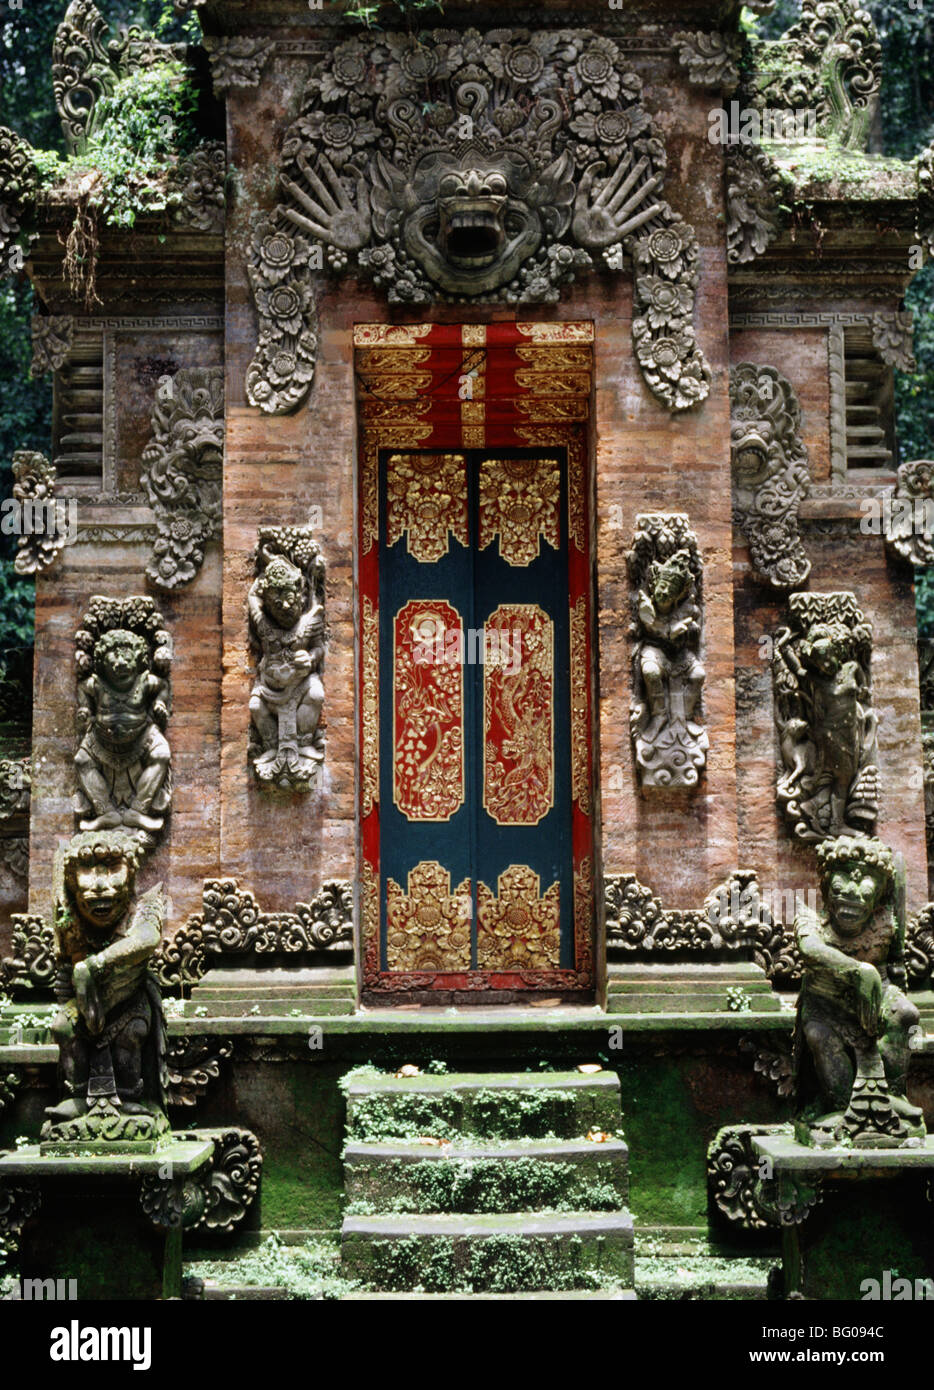 Gate at Monkey Forest Temple in Ubud, Bali, Indonesia, Southeast Asia, Asia - Stock Image